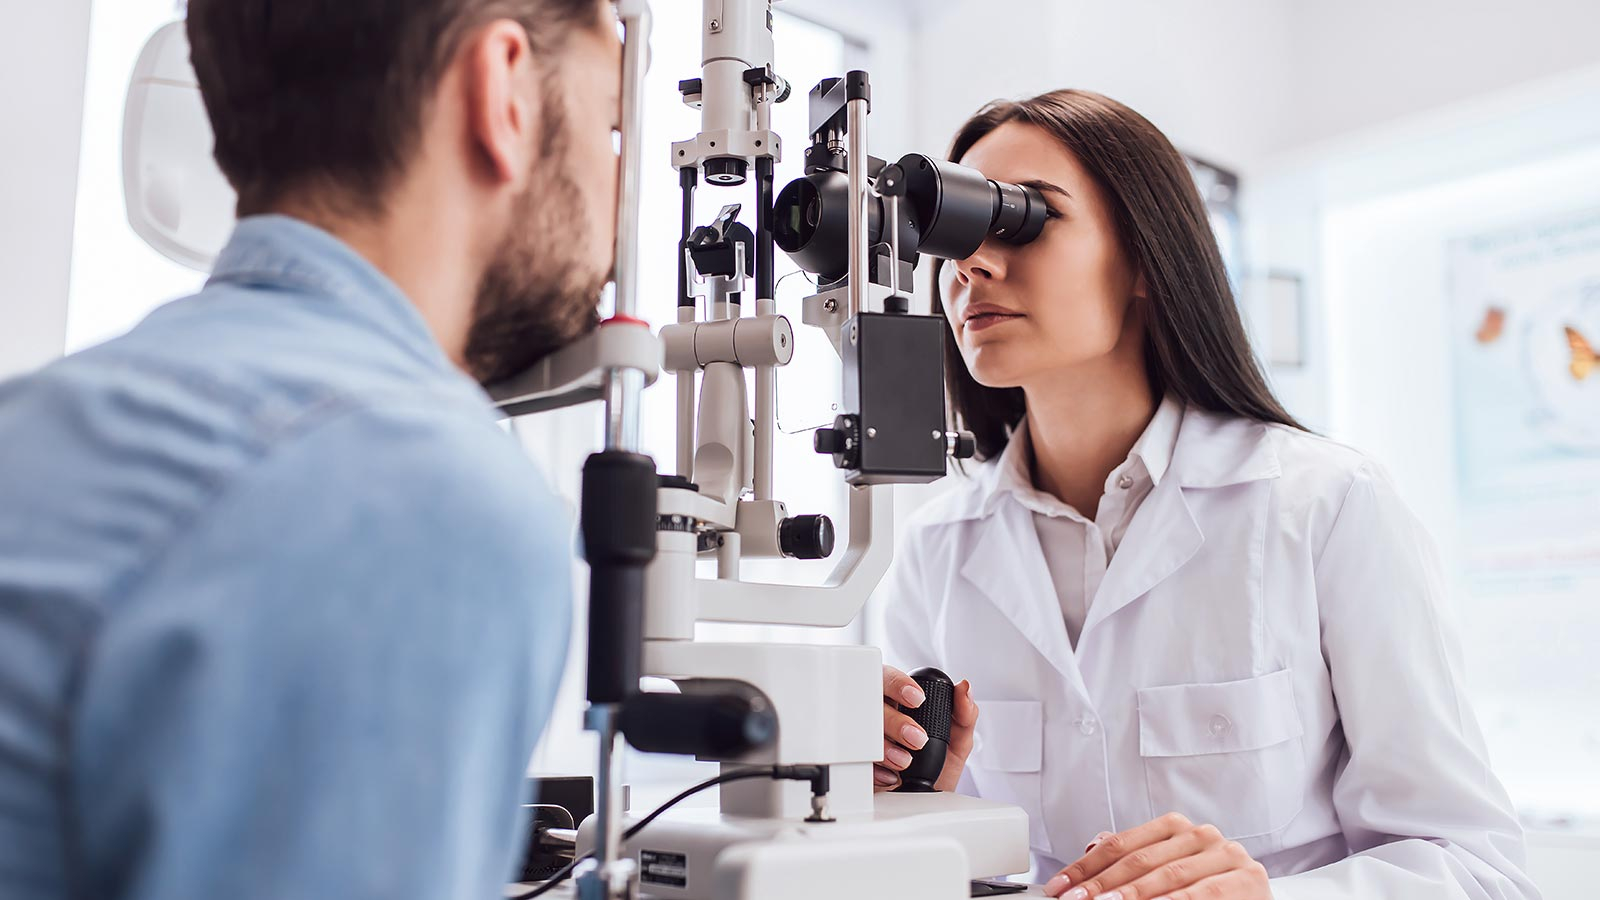 Opthalmologist - When to consult and educational background